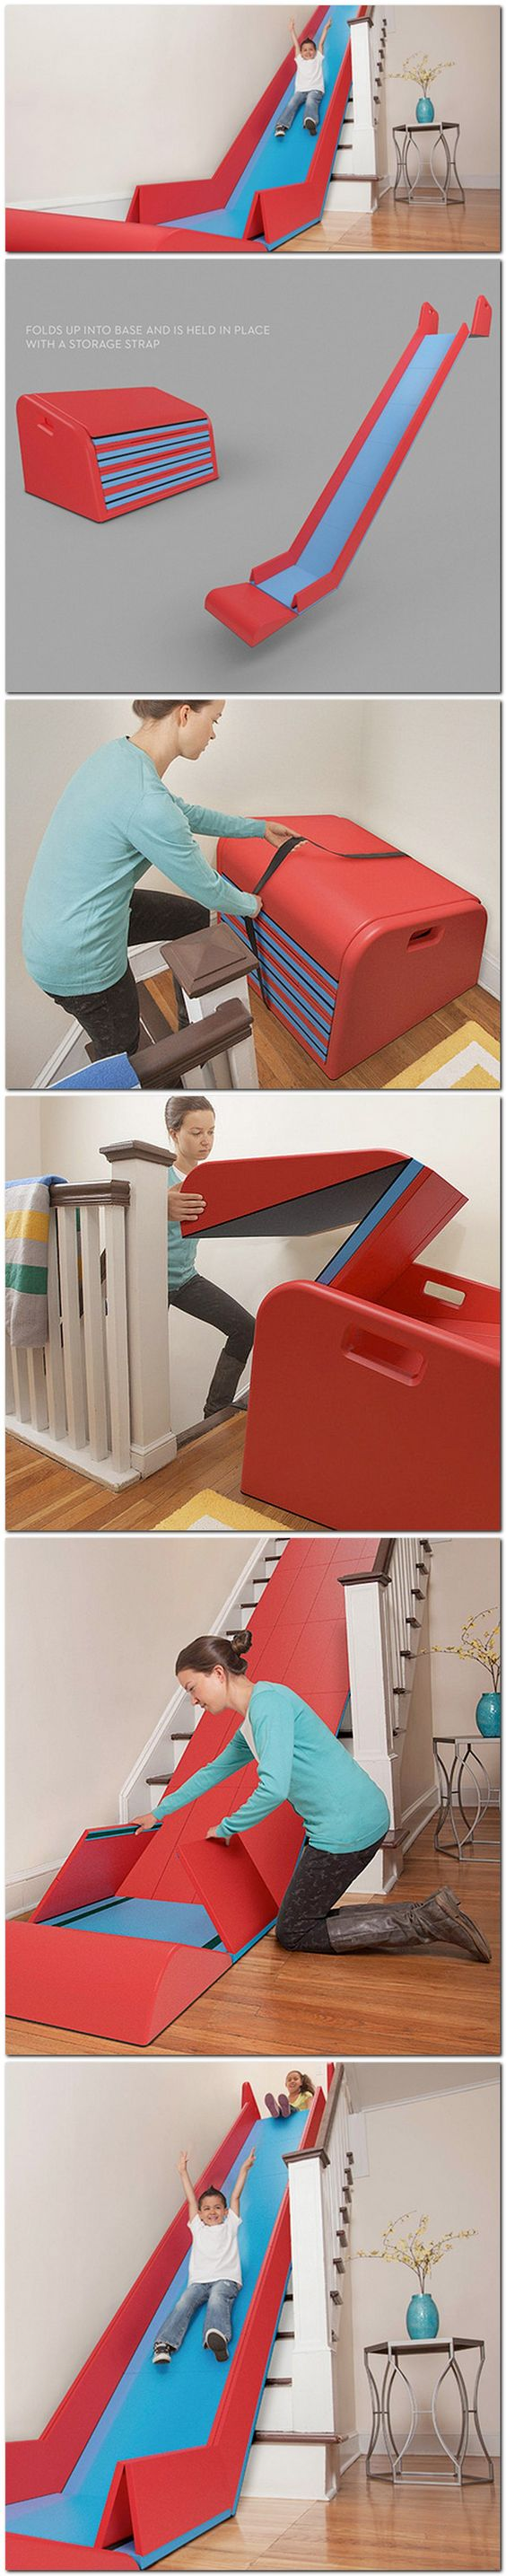 best images about kid room decoration ideas on pinterest